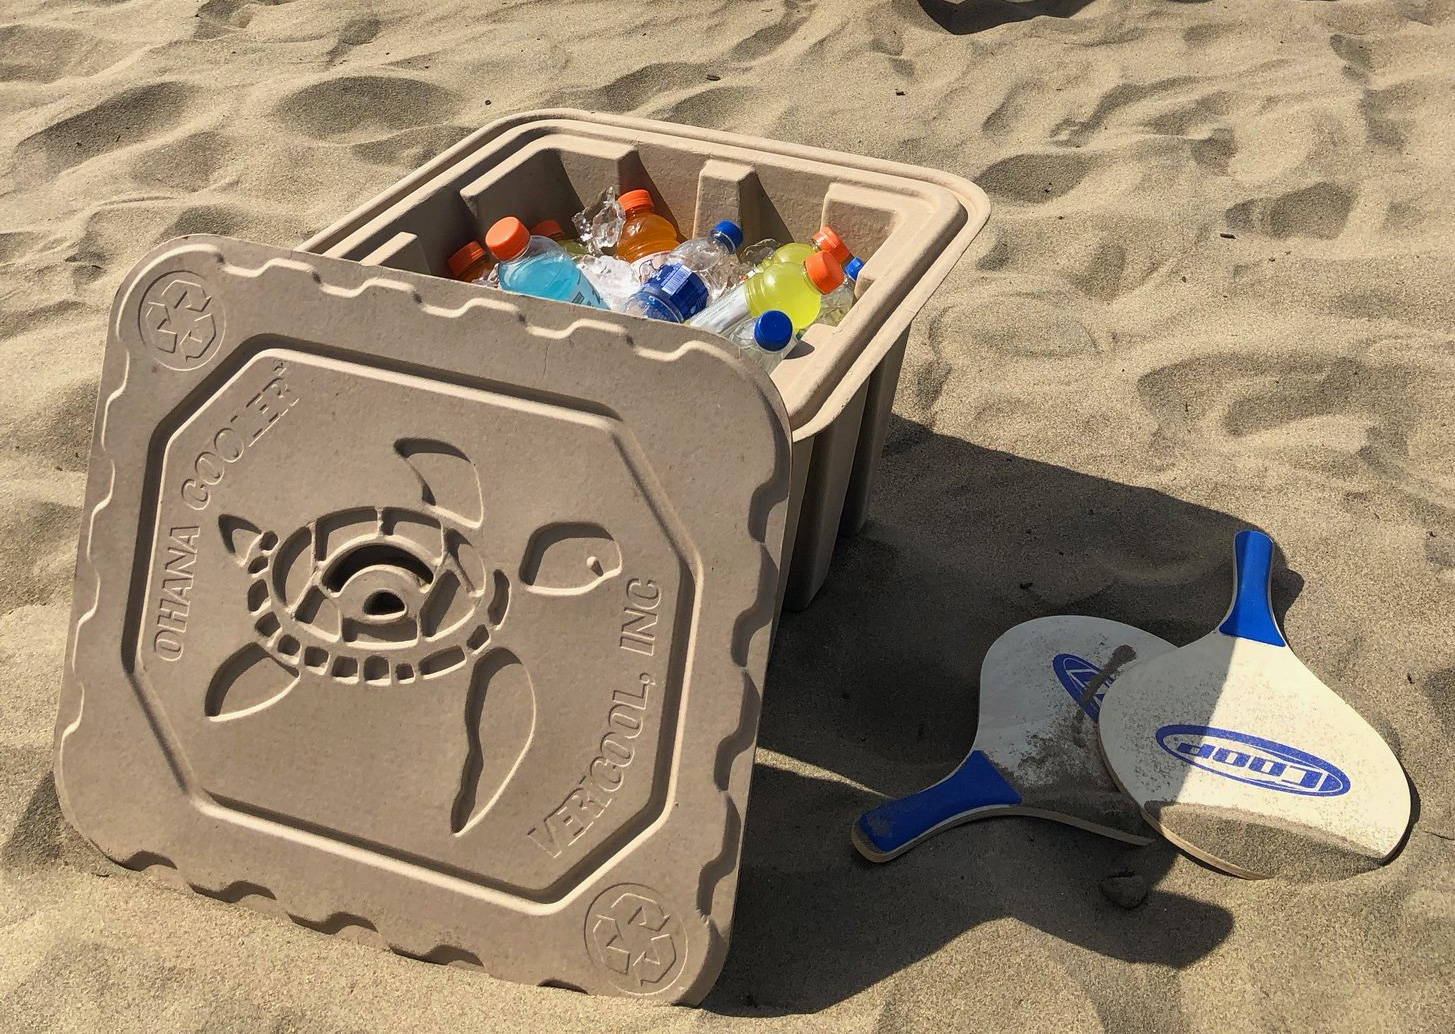 Vericool's Biodegradable Ohana Cooler is Way Cooler than Styrofoam at werd.com